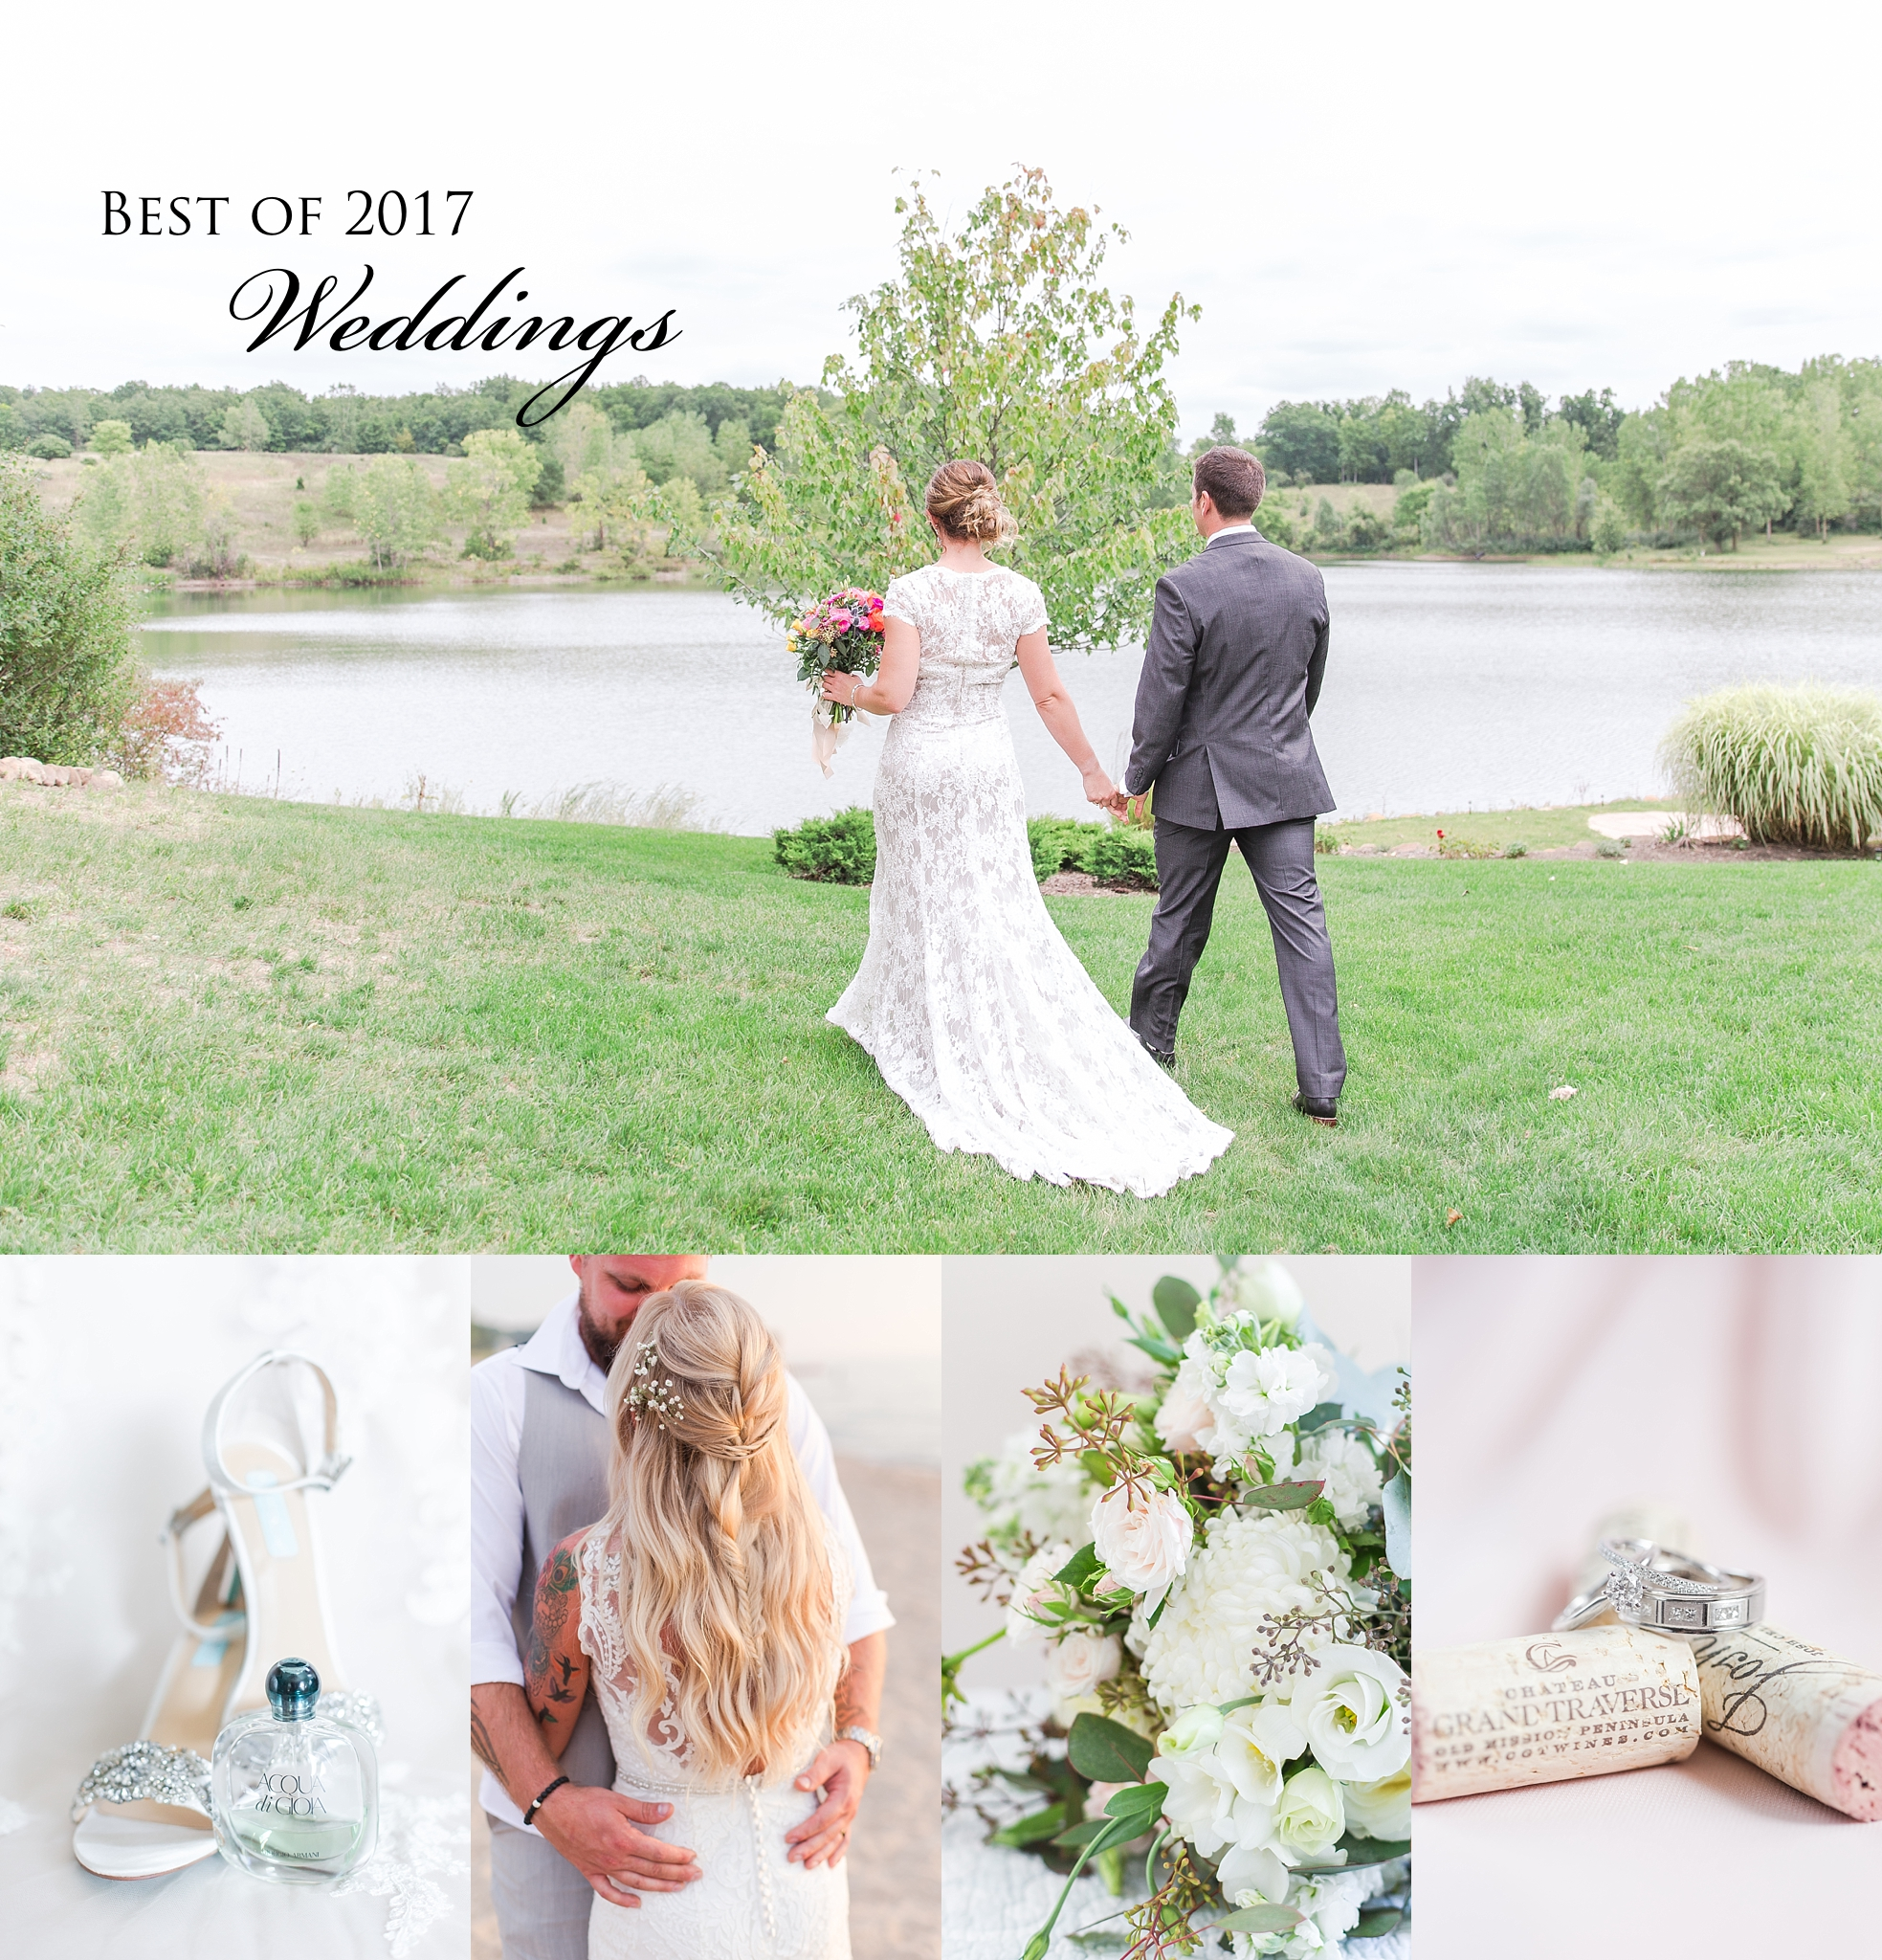 romantic-artful-candid-wedding-photos-in-detroit-lansing-ann-arbor-northern-michigan-and-chicago-by-courtney-carolyn-photography_0095.jpg